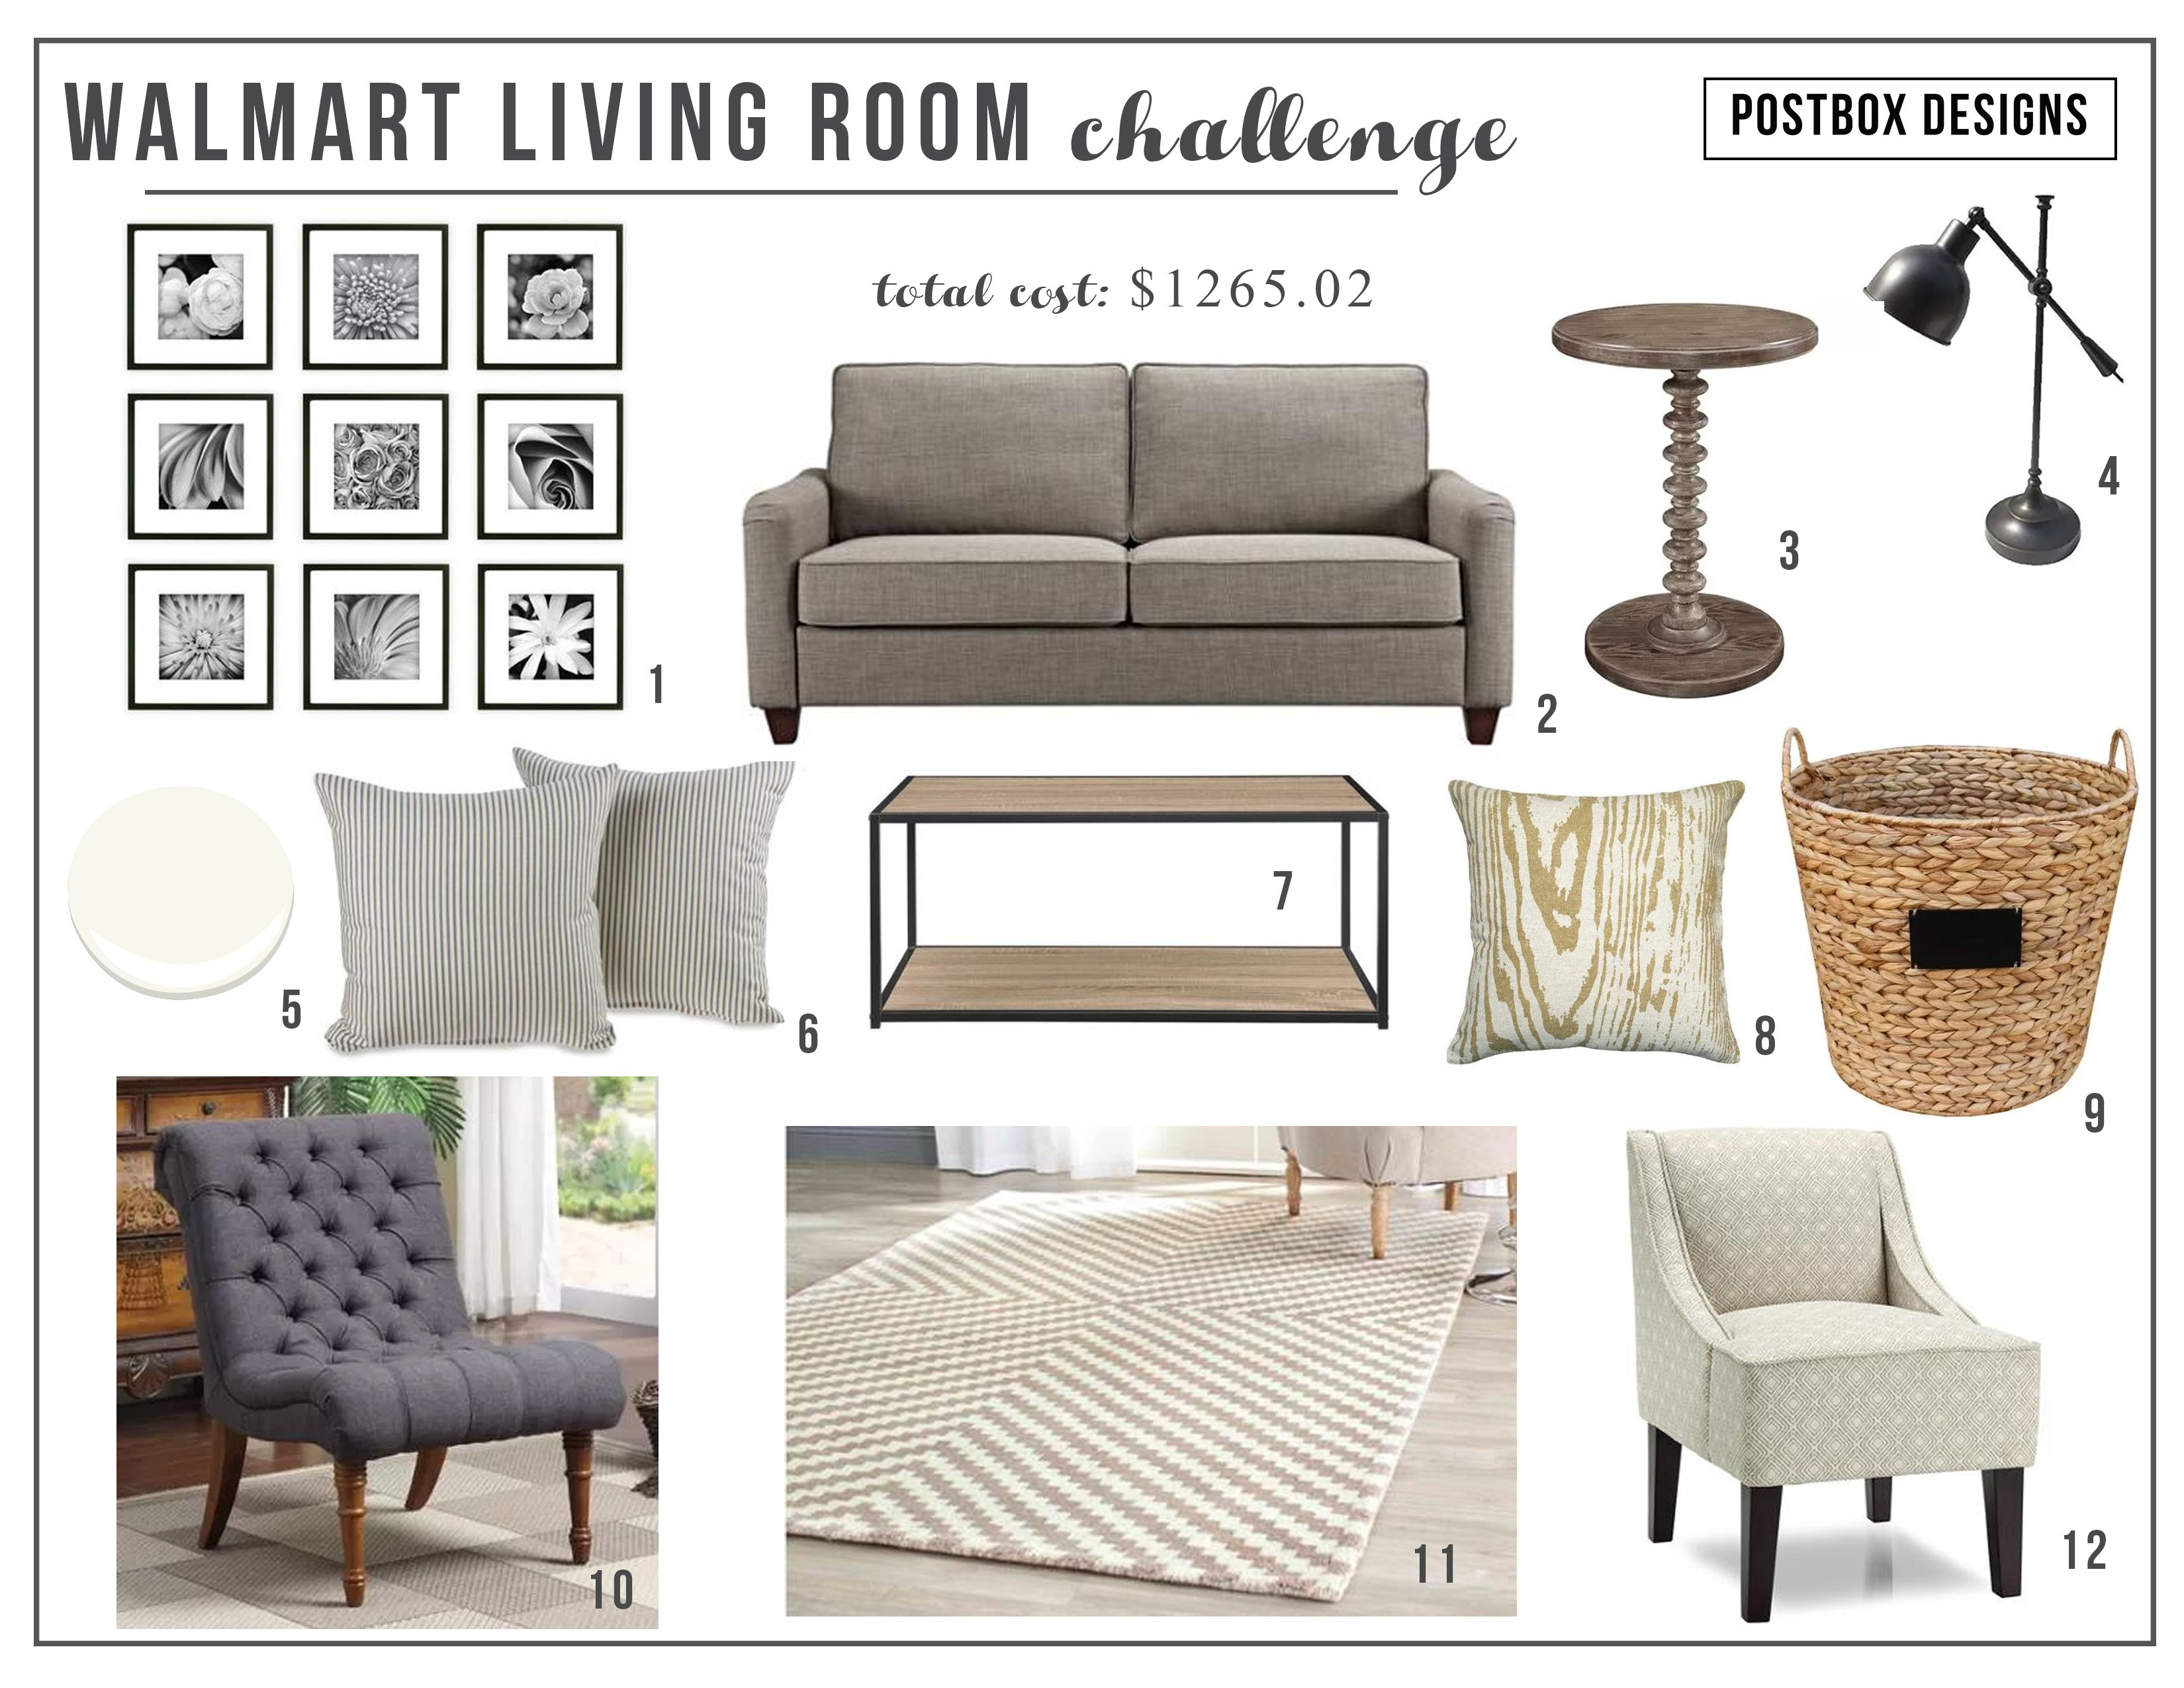 Living Room Design On A Budget Brilliant Walmart Living Room Design Challenge Budget Room Makeover Design Inspiration